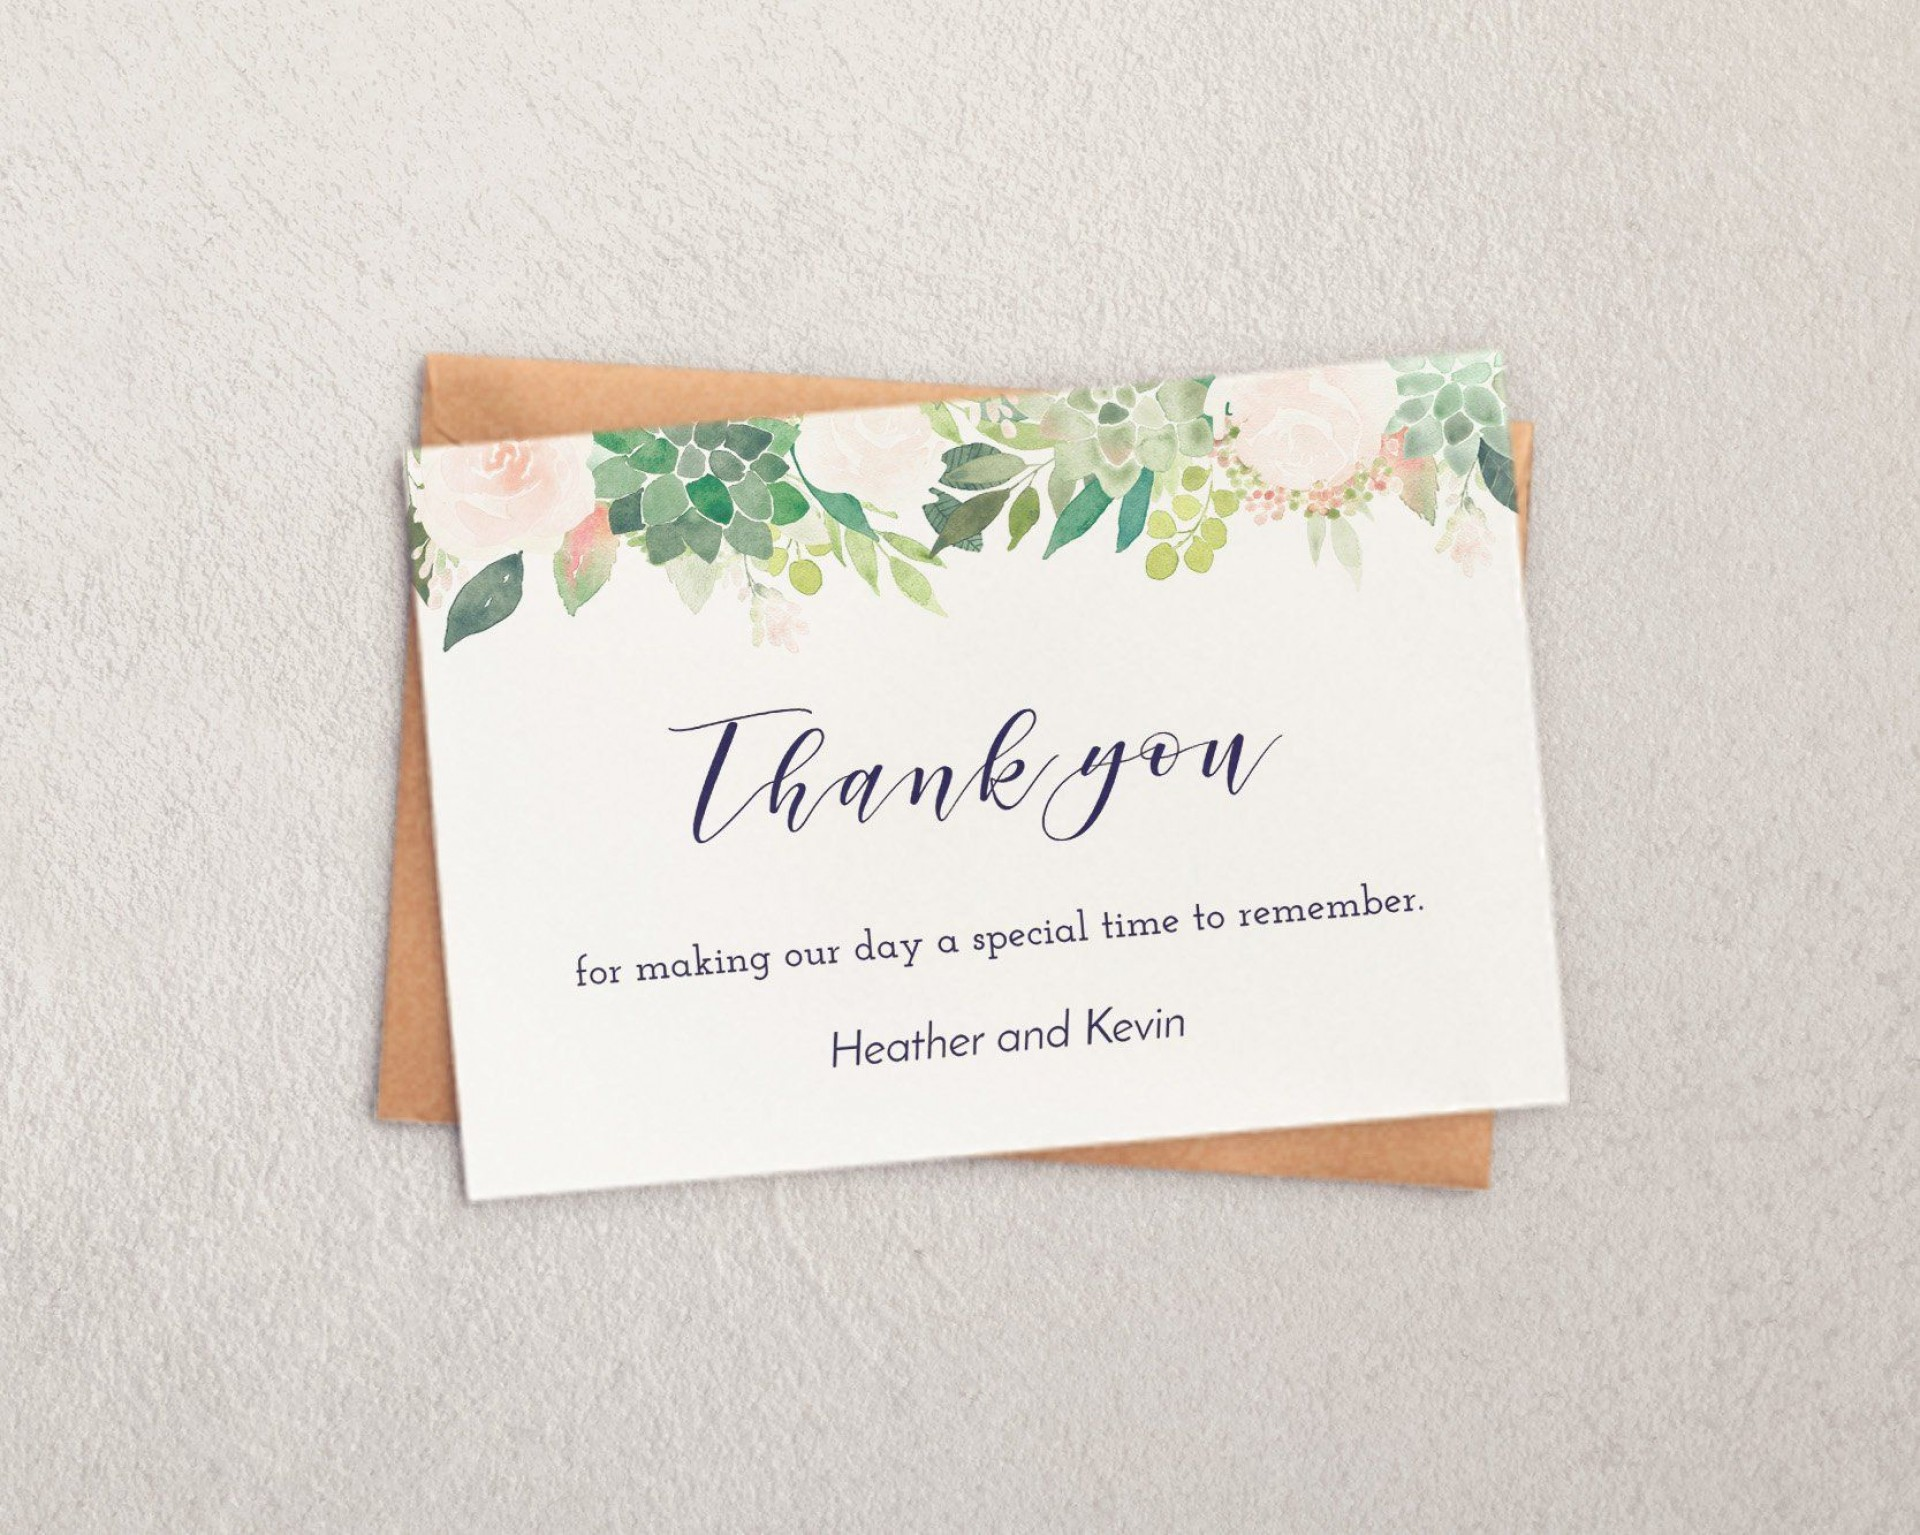 003 Imposing Thank You Note Template Wedding Shower Highest Clarity  Bridal Card Sample Wording1920